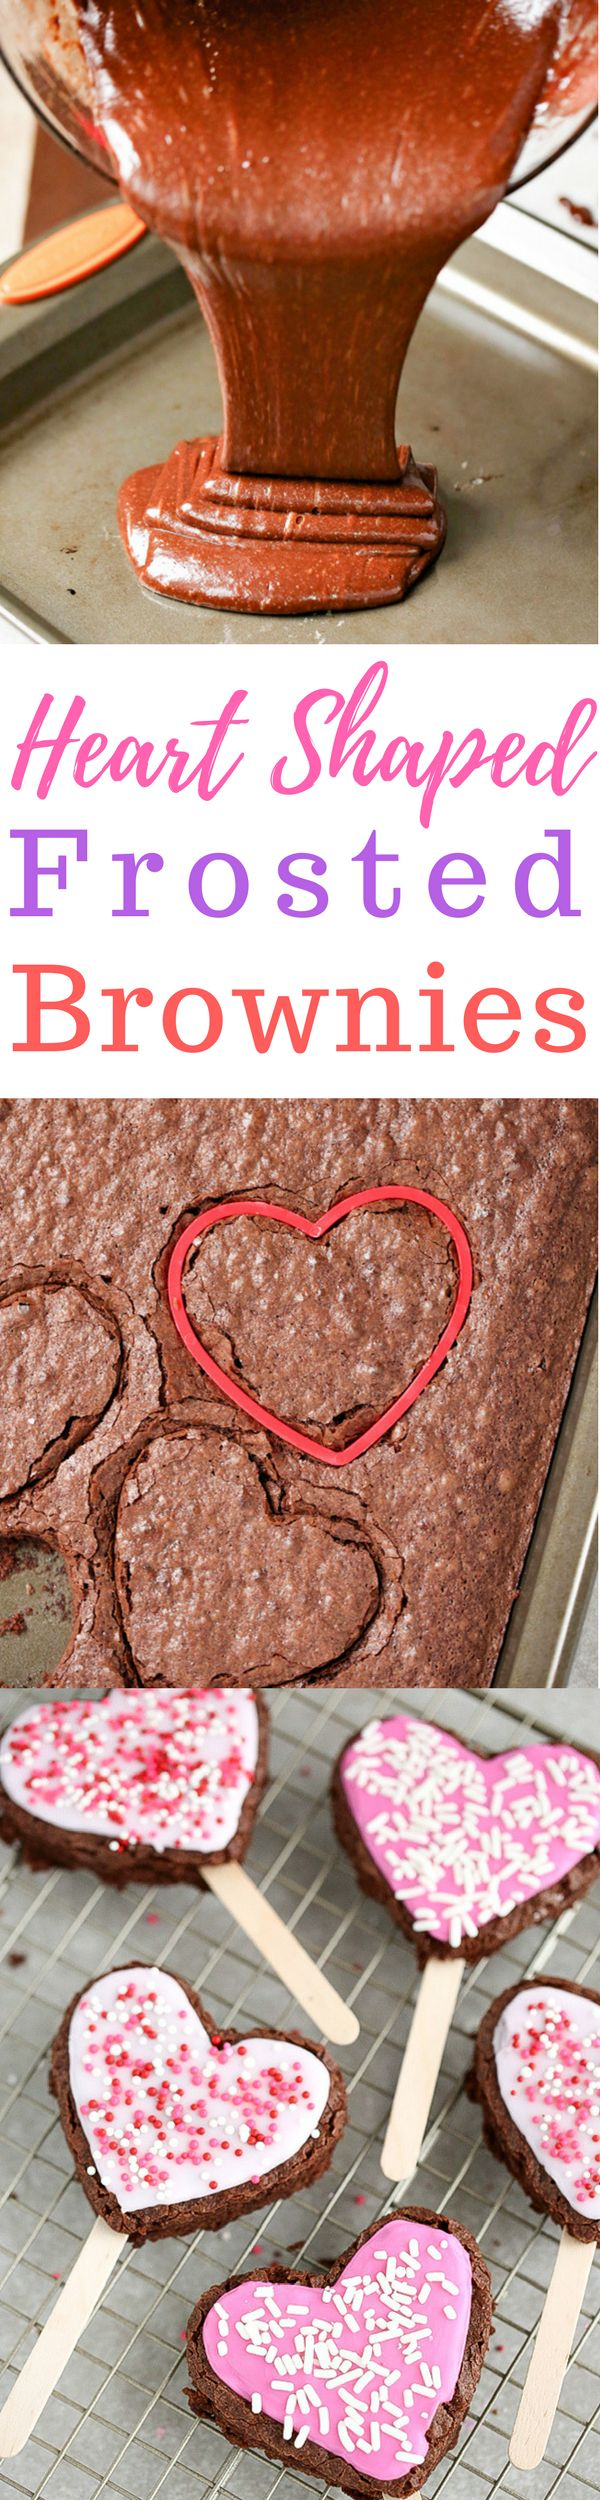 With Valentine's Day right around the corner, these Heart Shaped Frosted Brownies make for a decadent dessert to share with your loved ones. via @simplymommy